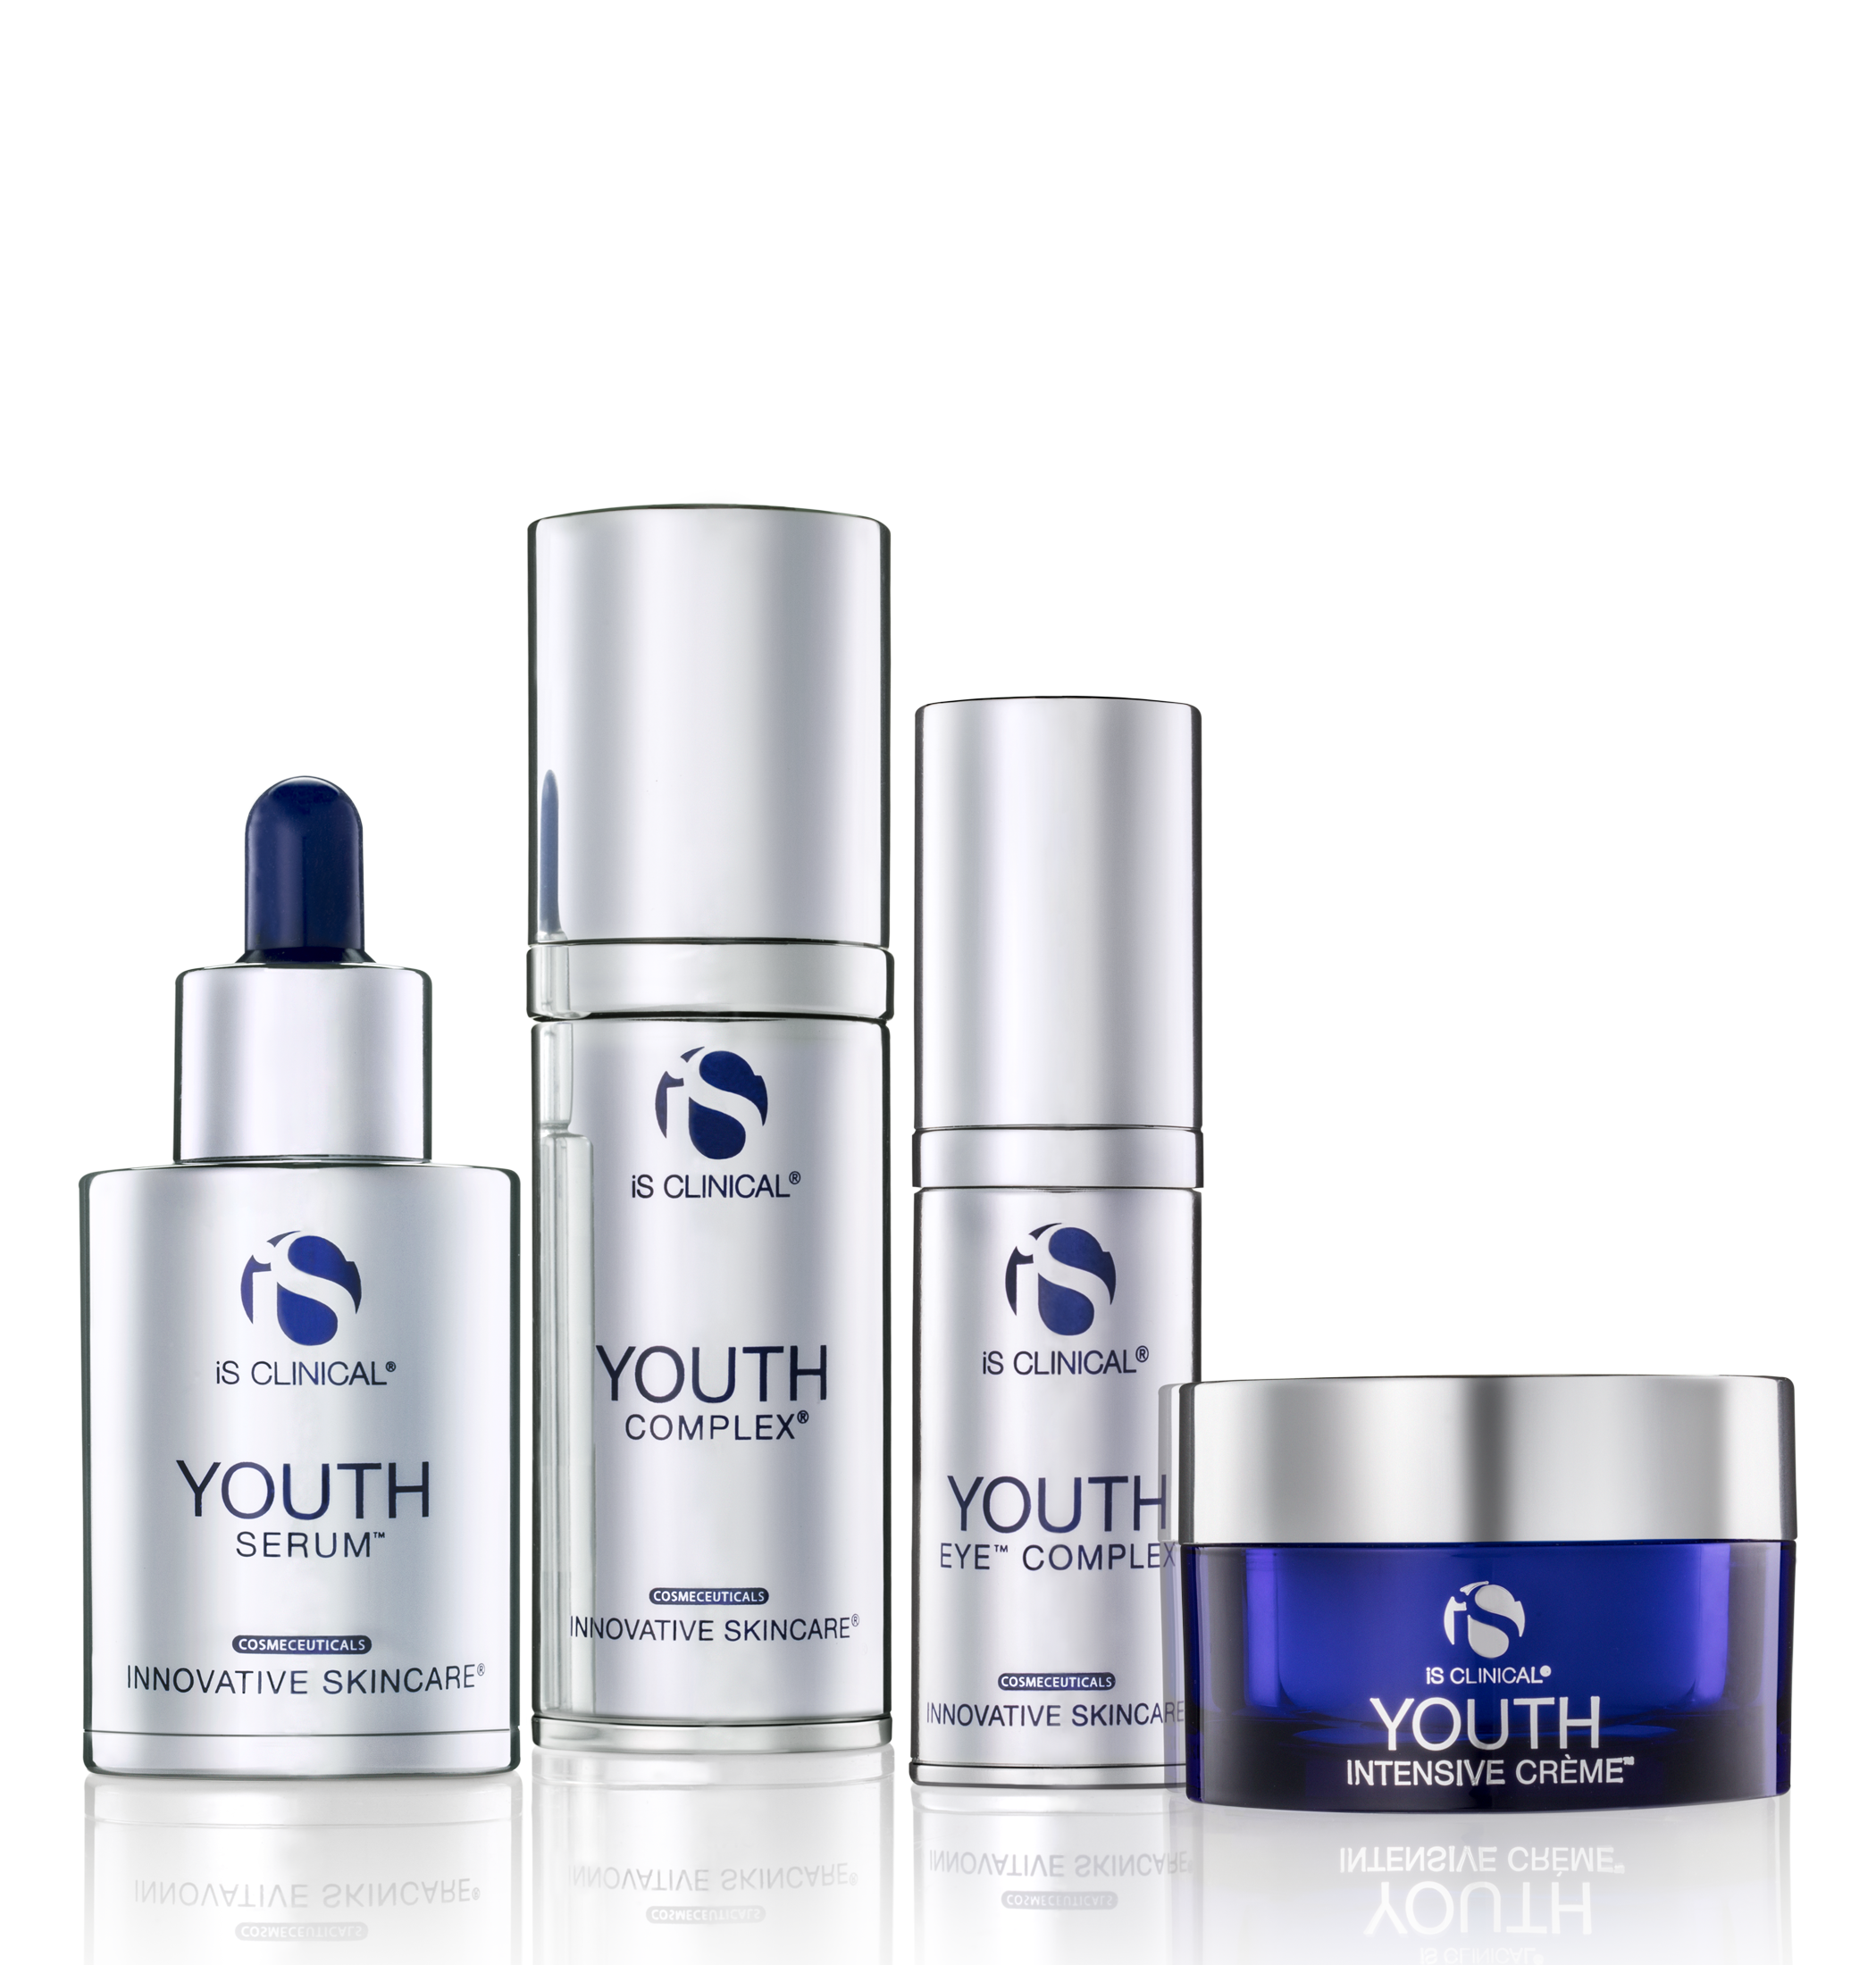 Boasting one of the most revolutionary anti aging skin care lines IS Clinical - A great way to halt the skin aging process.